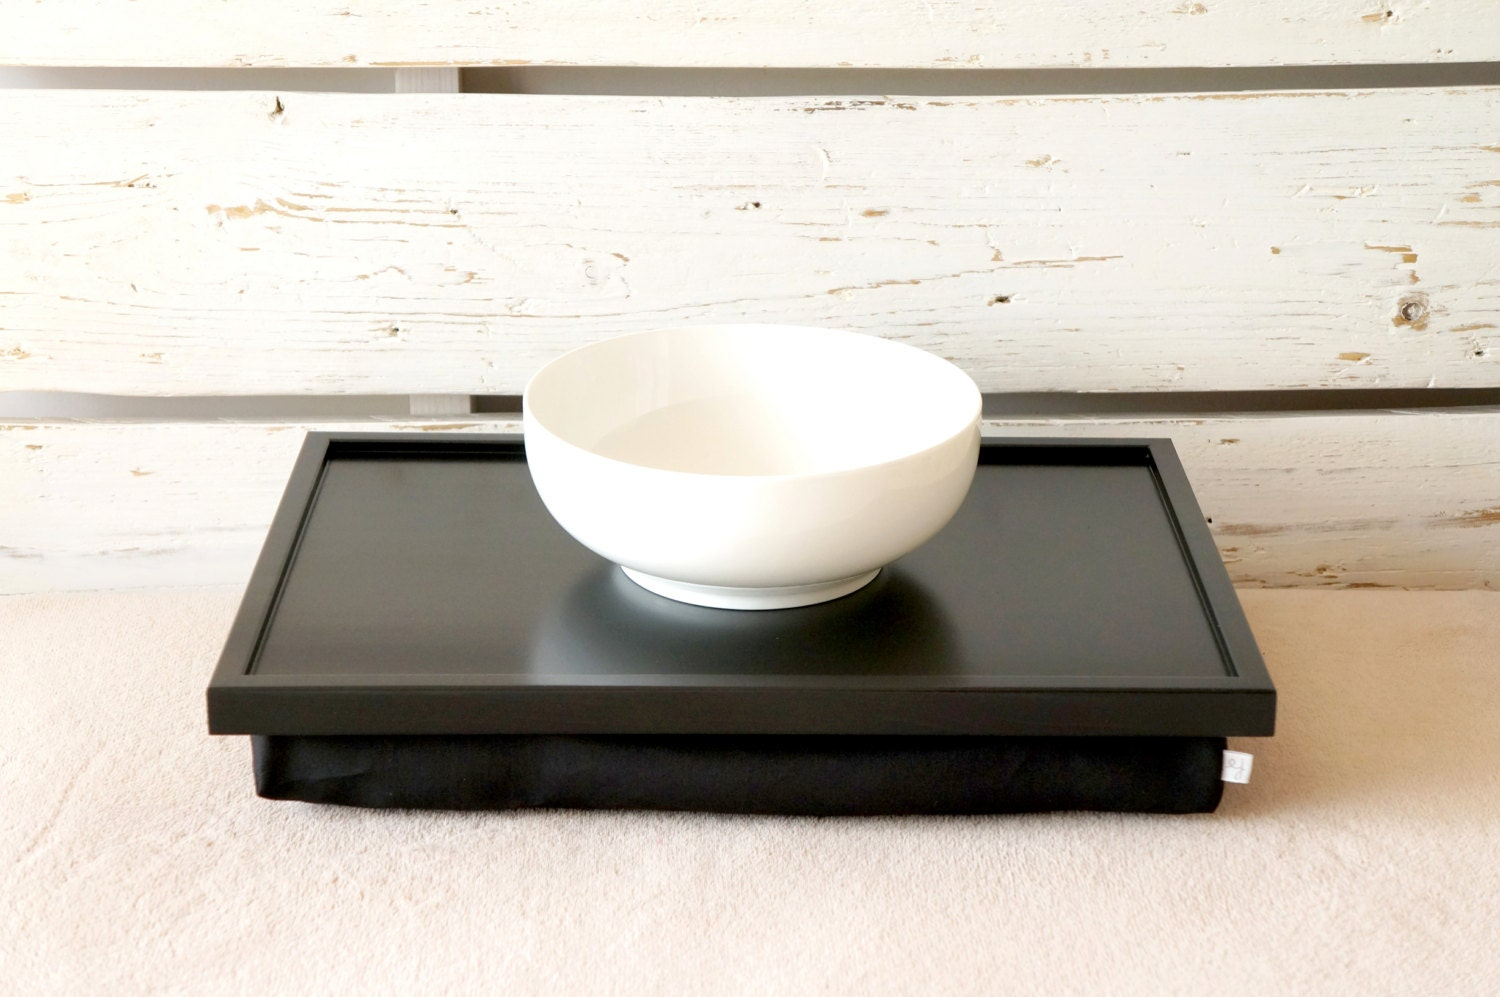 iPad desk with Pillow or Laptop Lap Desk Solid Black by